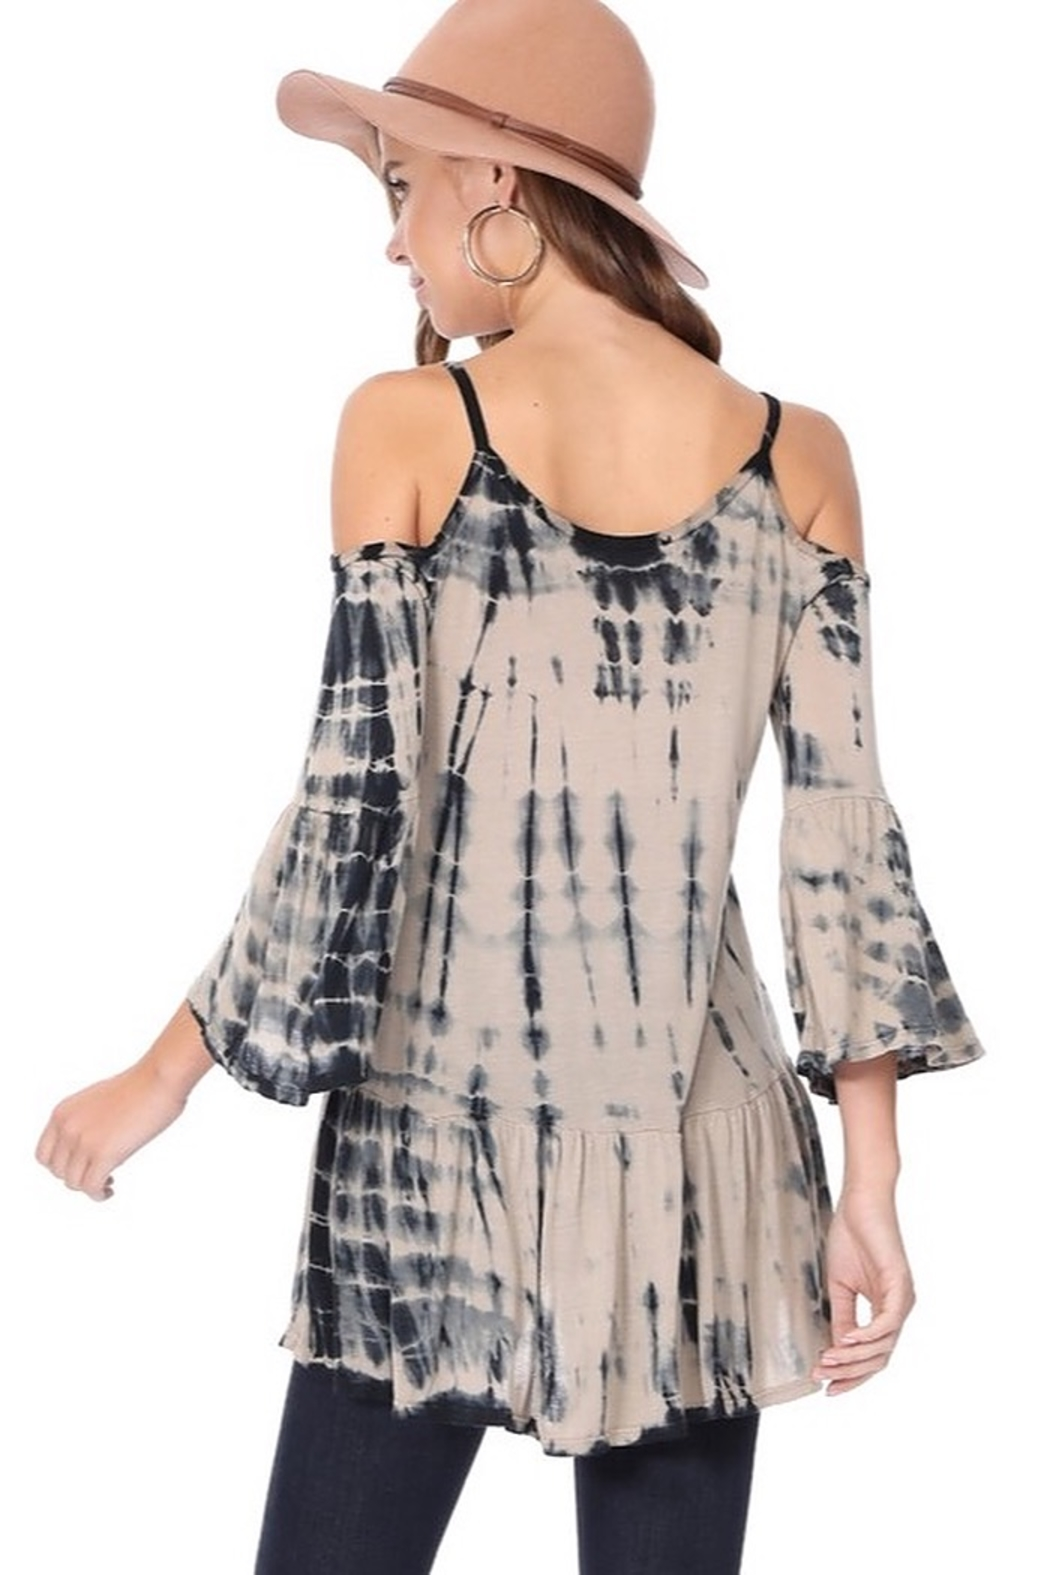 Tparty Bamboo Tie Dye Flowy Cold Shoulder Top - Side Cropped Image